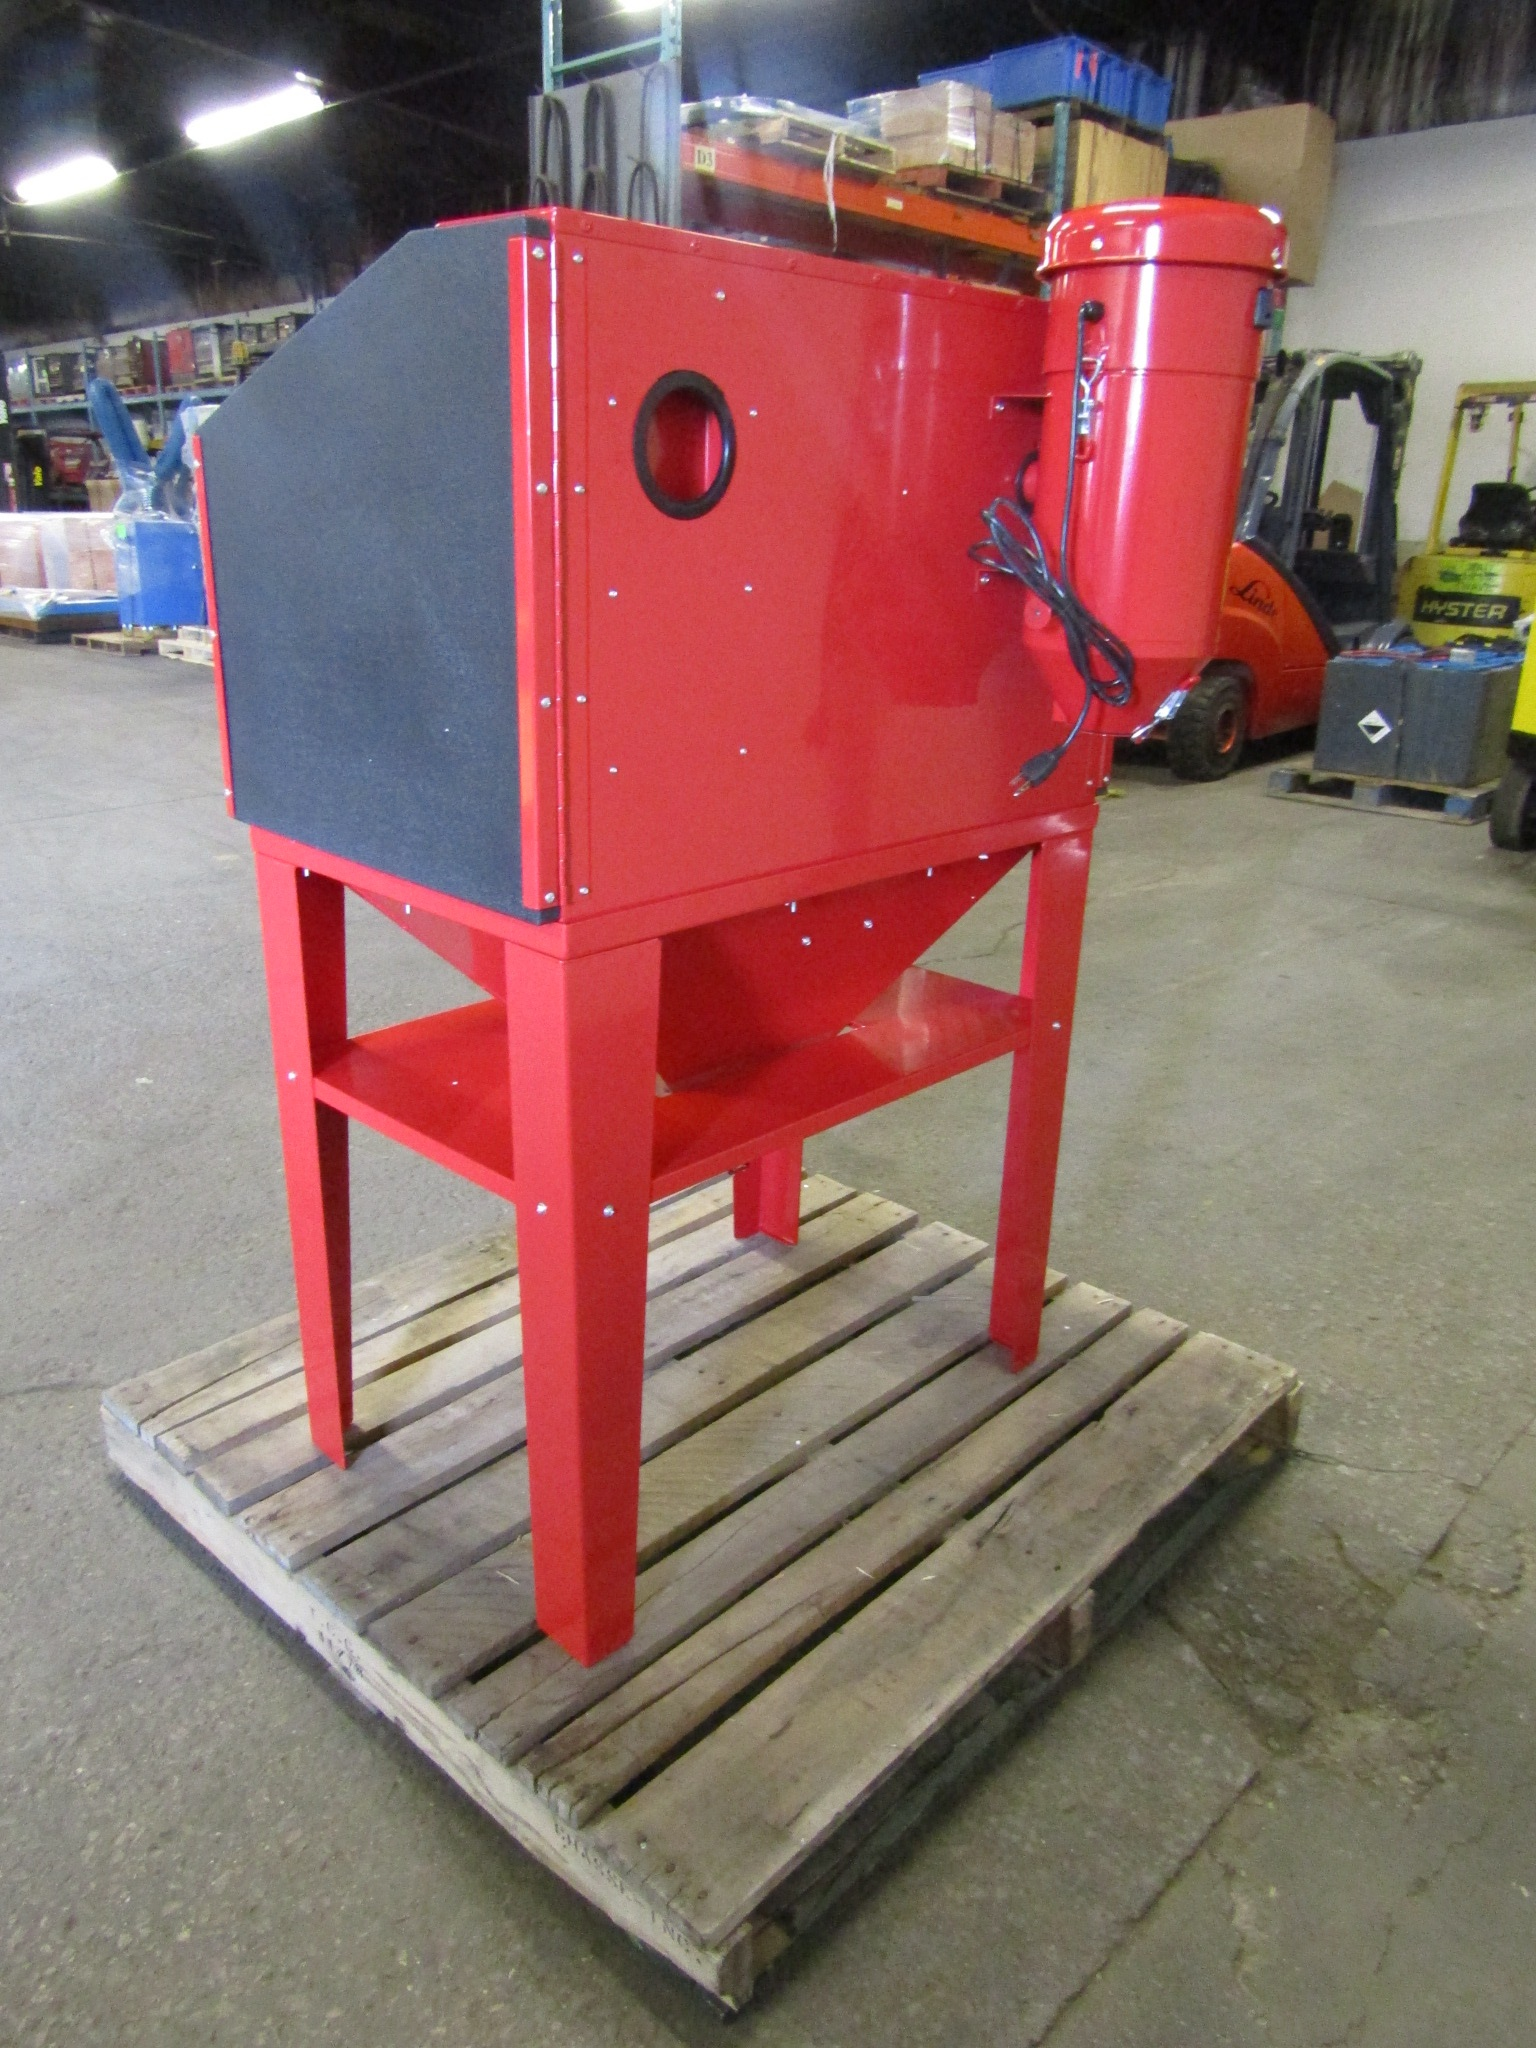 "Lot 270 - BRAND NEW OMNI Sandblast Cabinet with Dust vacuum unit - 125PSI working space 24"" X 33"" X 25"""